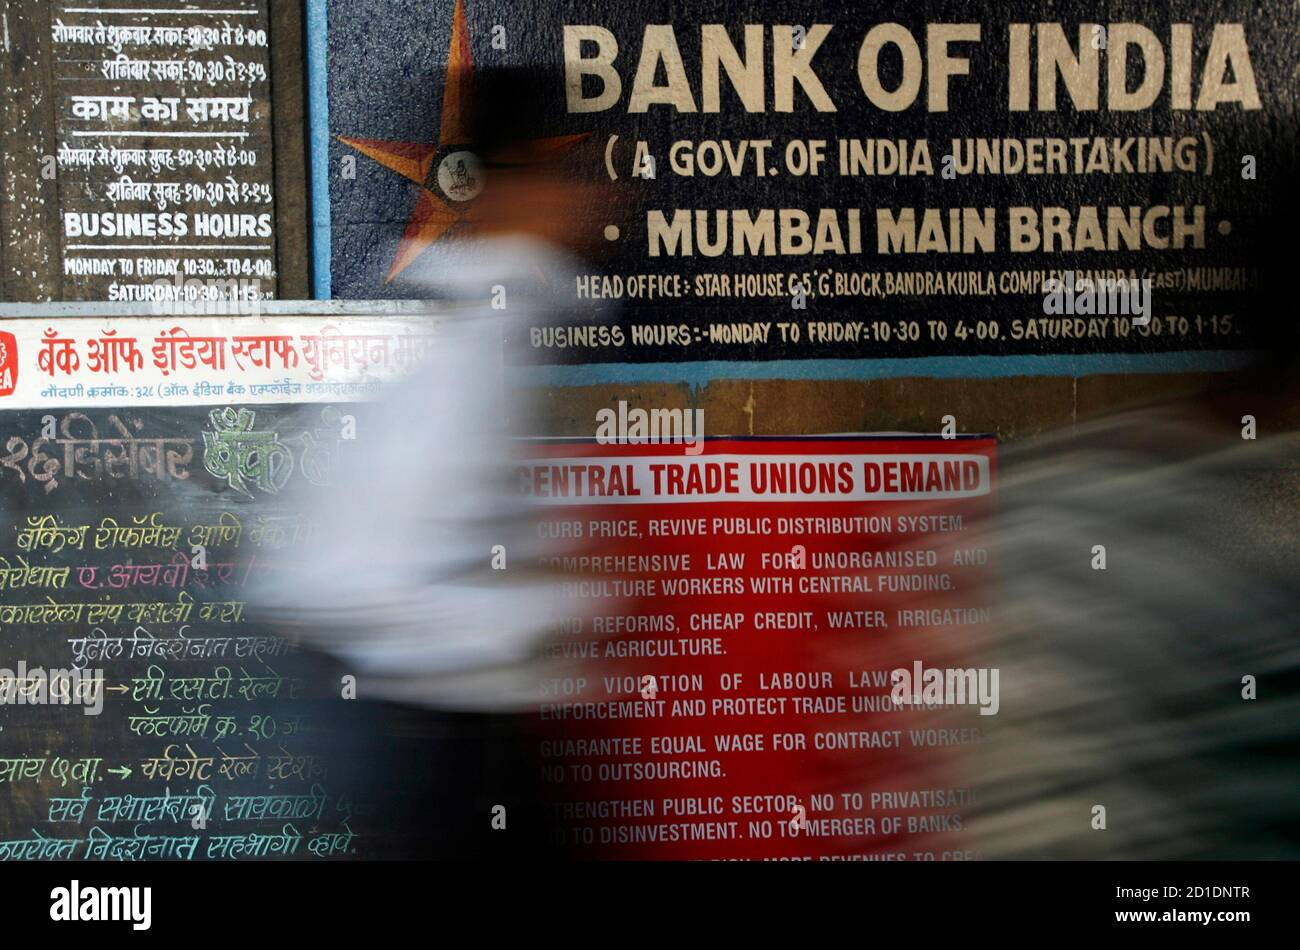 A man walks in front of a banner outside a state-run bank during a strike in Mumbai December 16, 2009. About 400,000 bank employees went on strike on Wednesday to protest merging state-owned banks, partially affecting cash transactions and clearing operations, a bank union official said. REUTERS/Arko Datta (INDIA - Tags: BUSINESS) Stock Photo